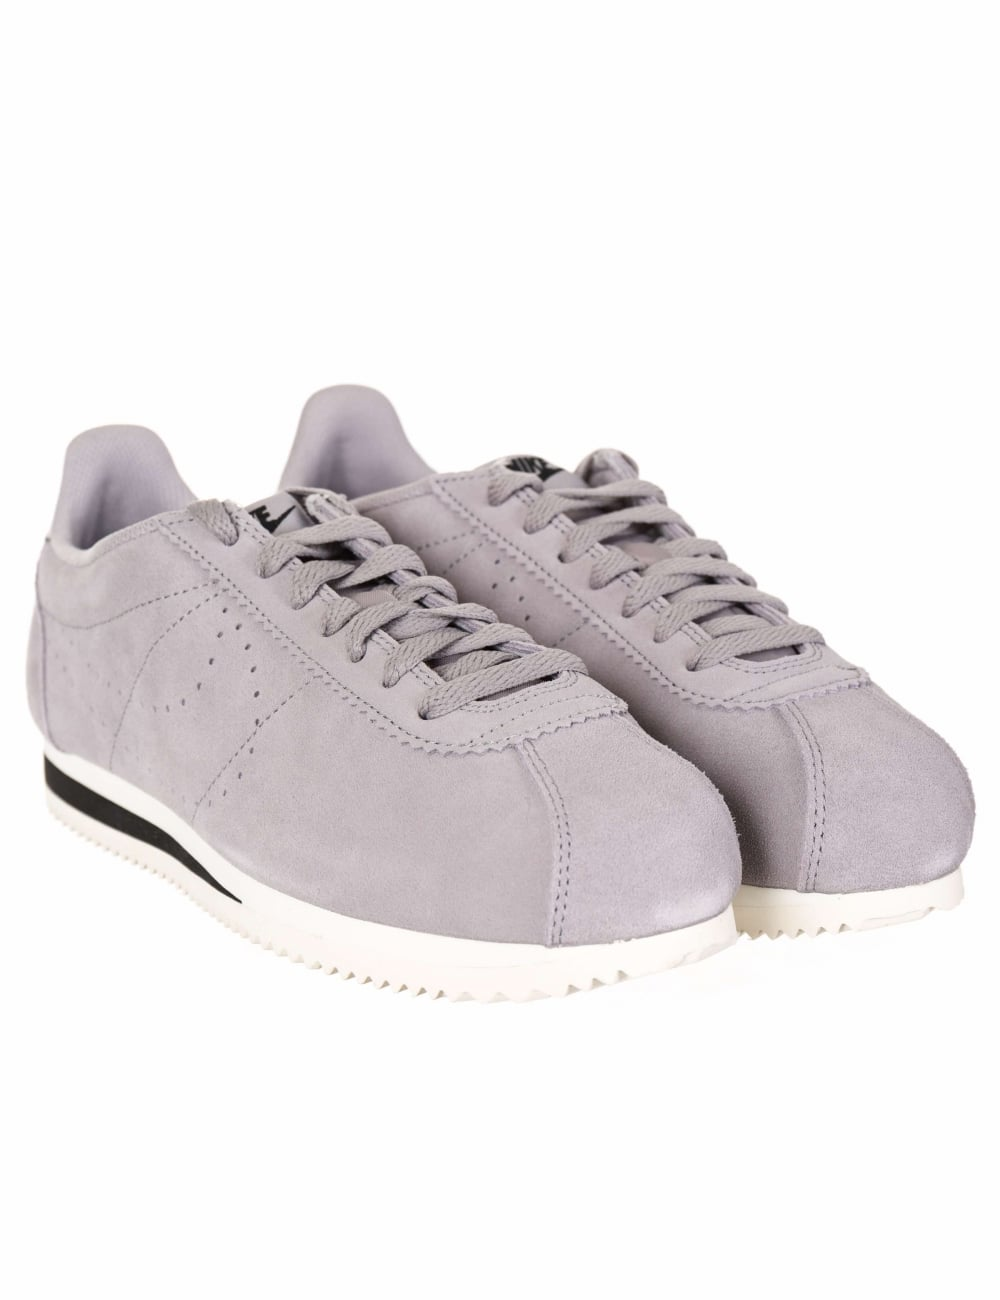 buy online bcc7a 91660 Cortez Suede Trainers - Atmosphere Grey